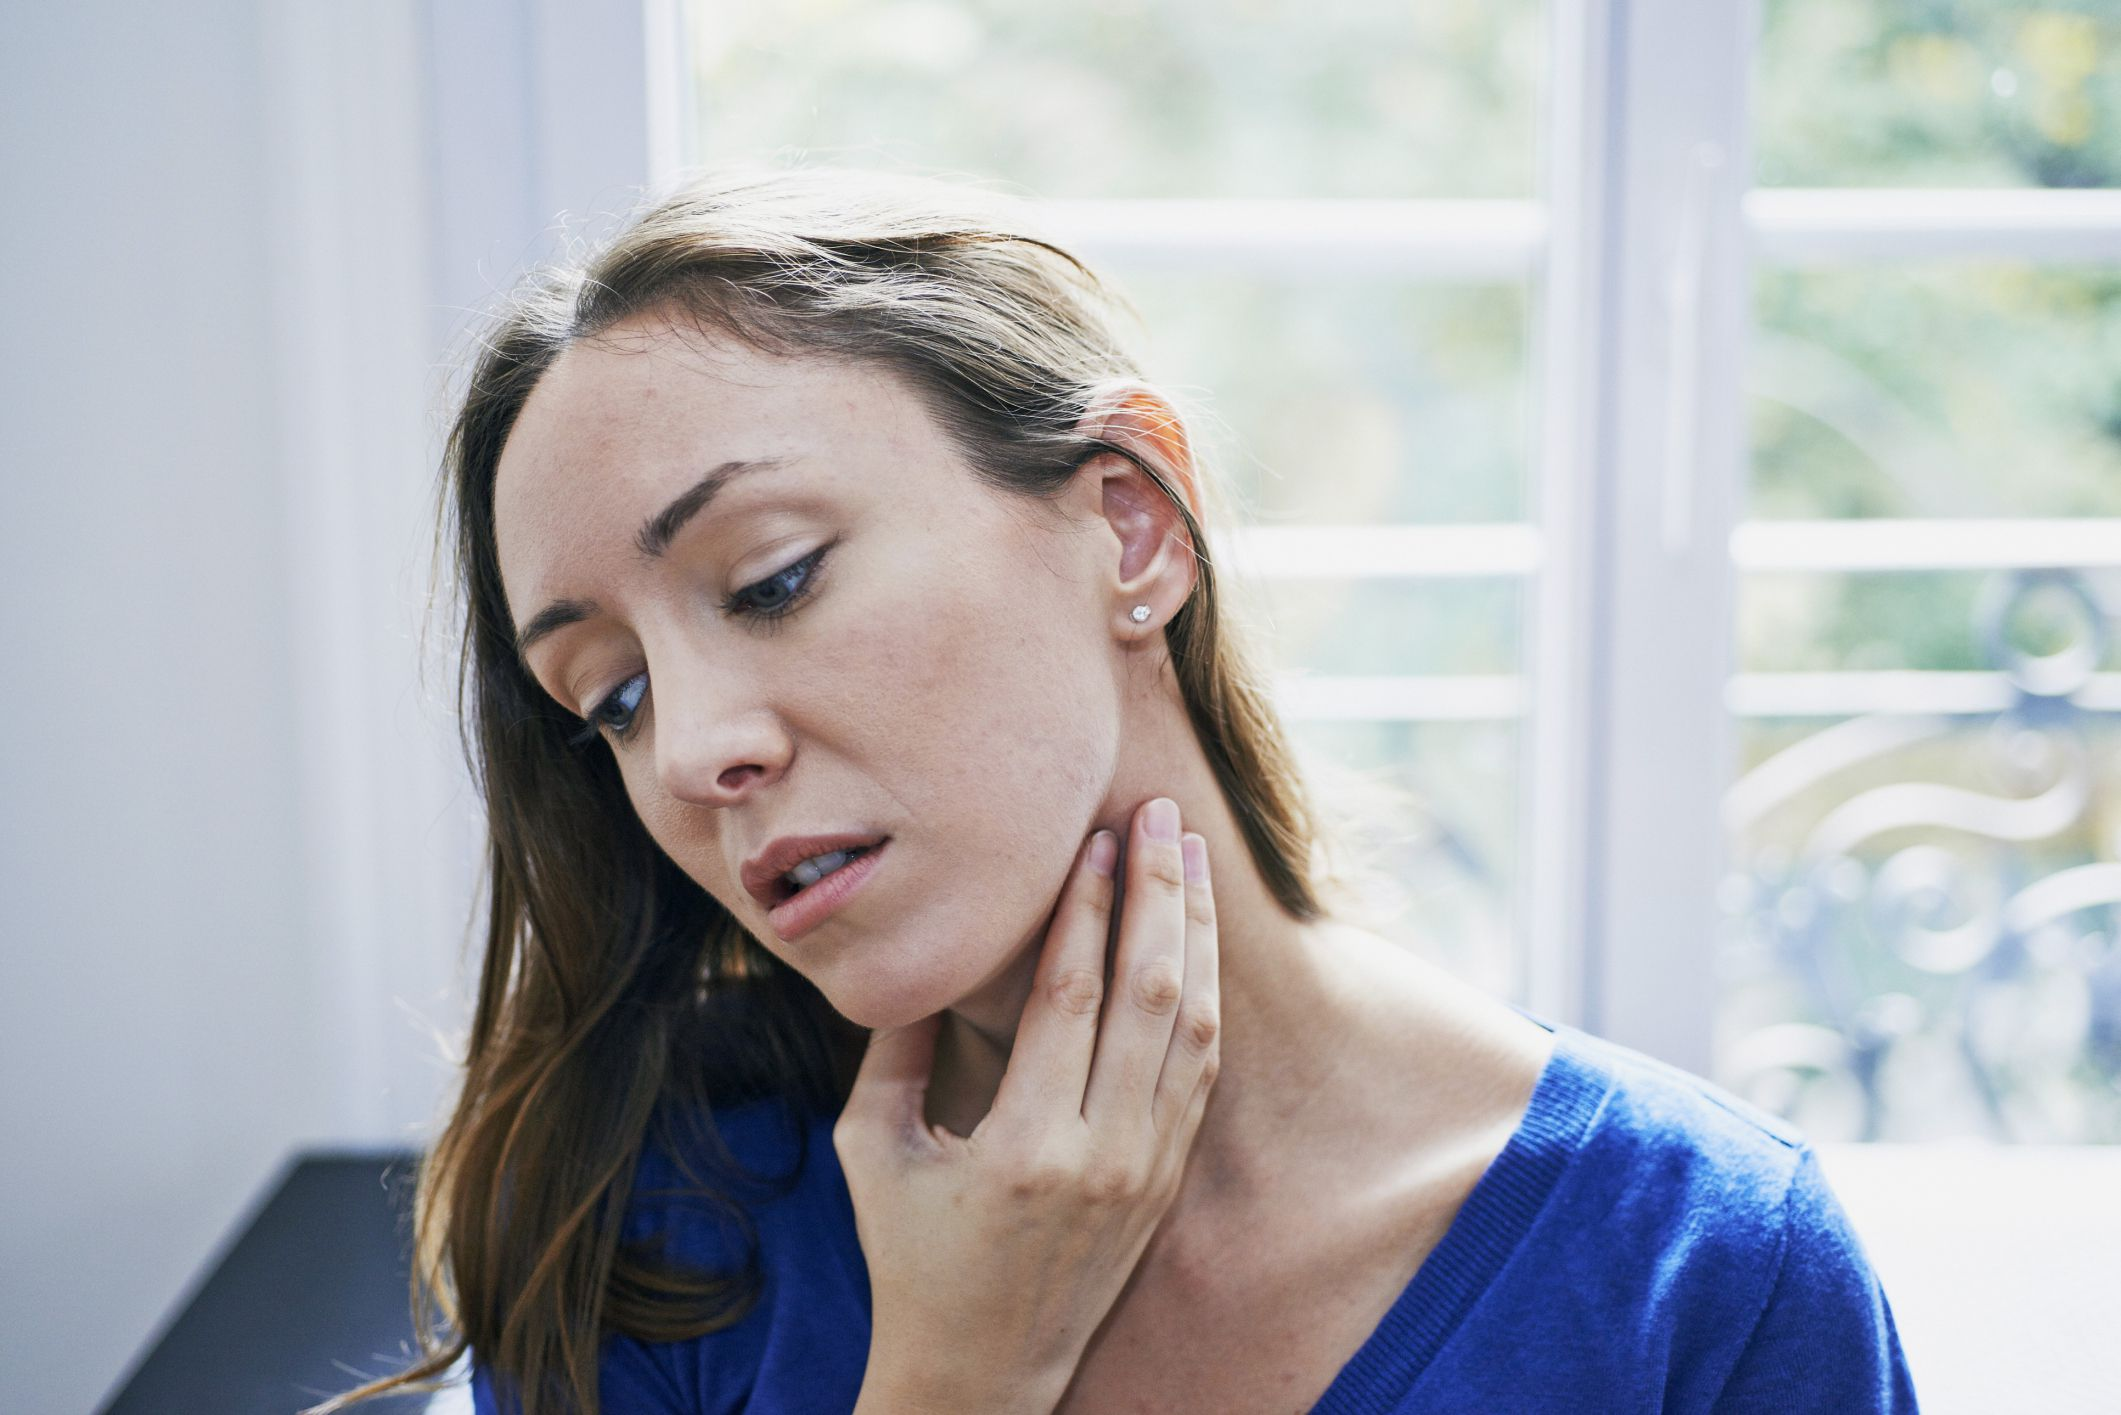 How to Tell a Lump From a Lymph Node